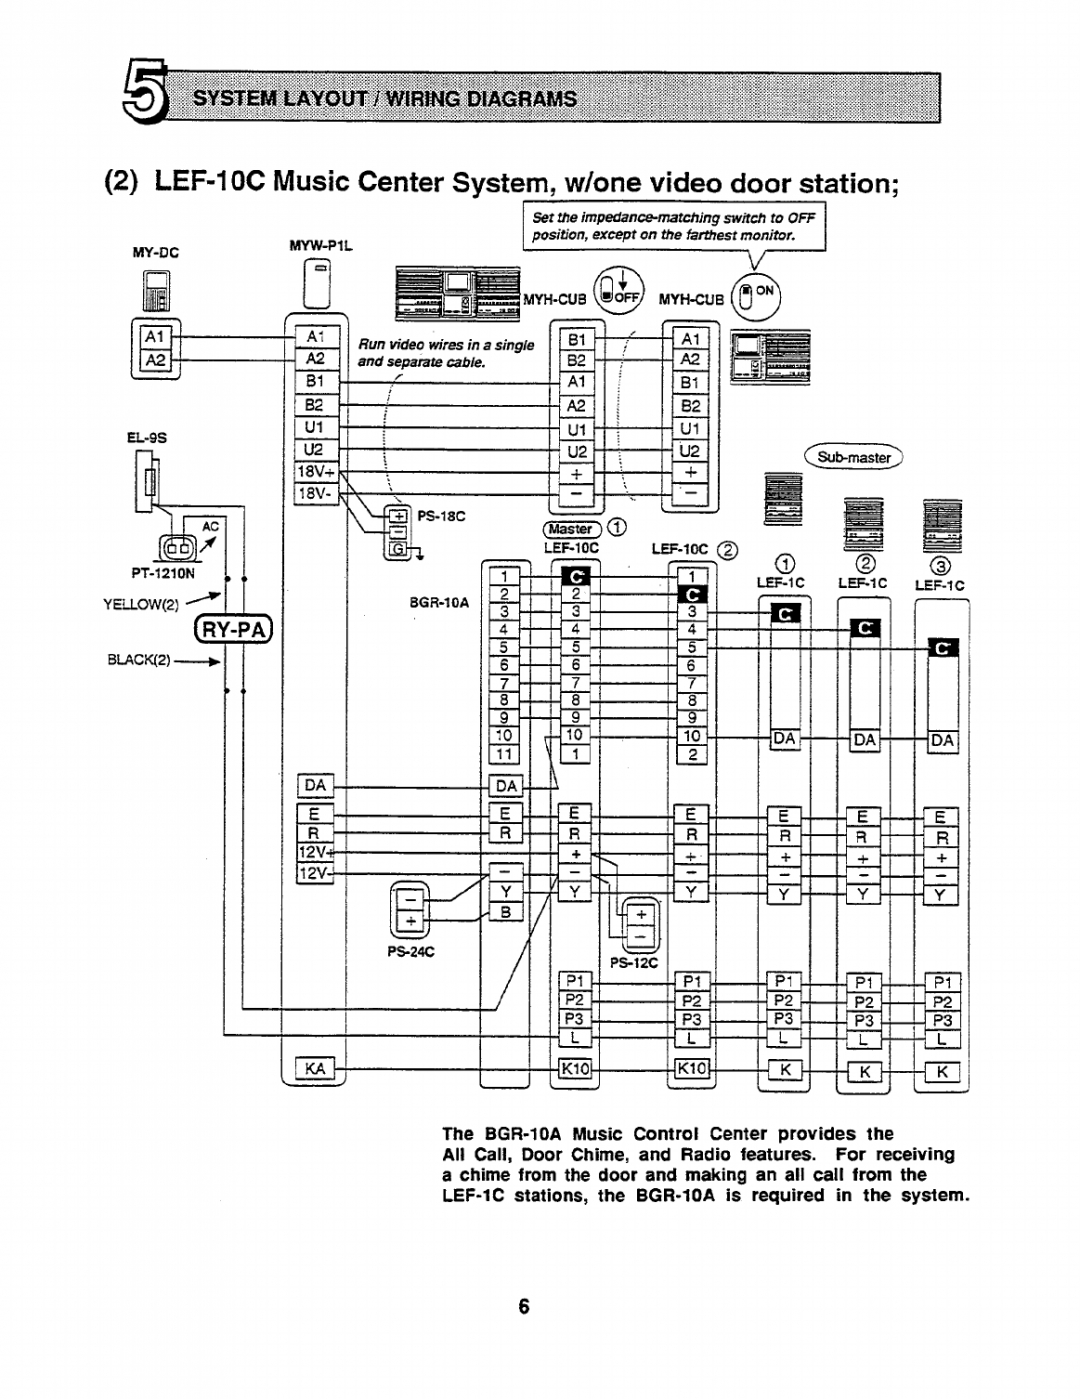 aiphone lef 10 wiring diagram Collection-AiPhone Lef 10 Wiring Diagram Best Diagram Lee Dan Audio and Video Apartment Inter S 12-f